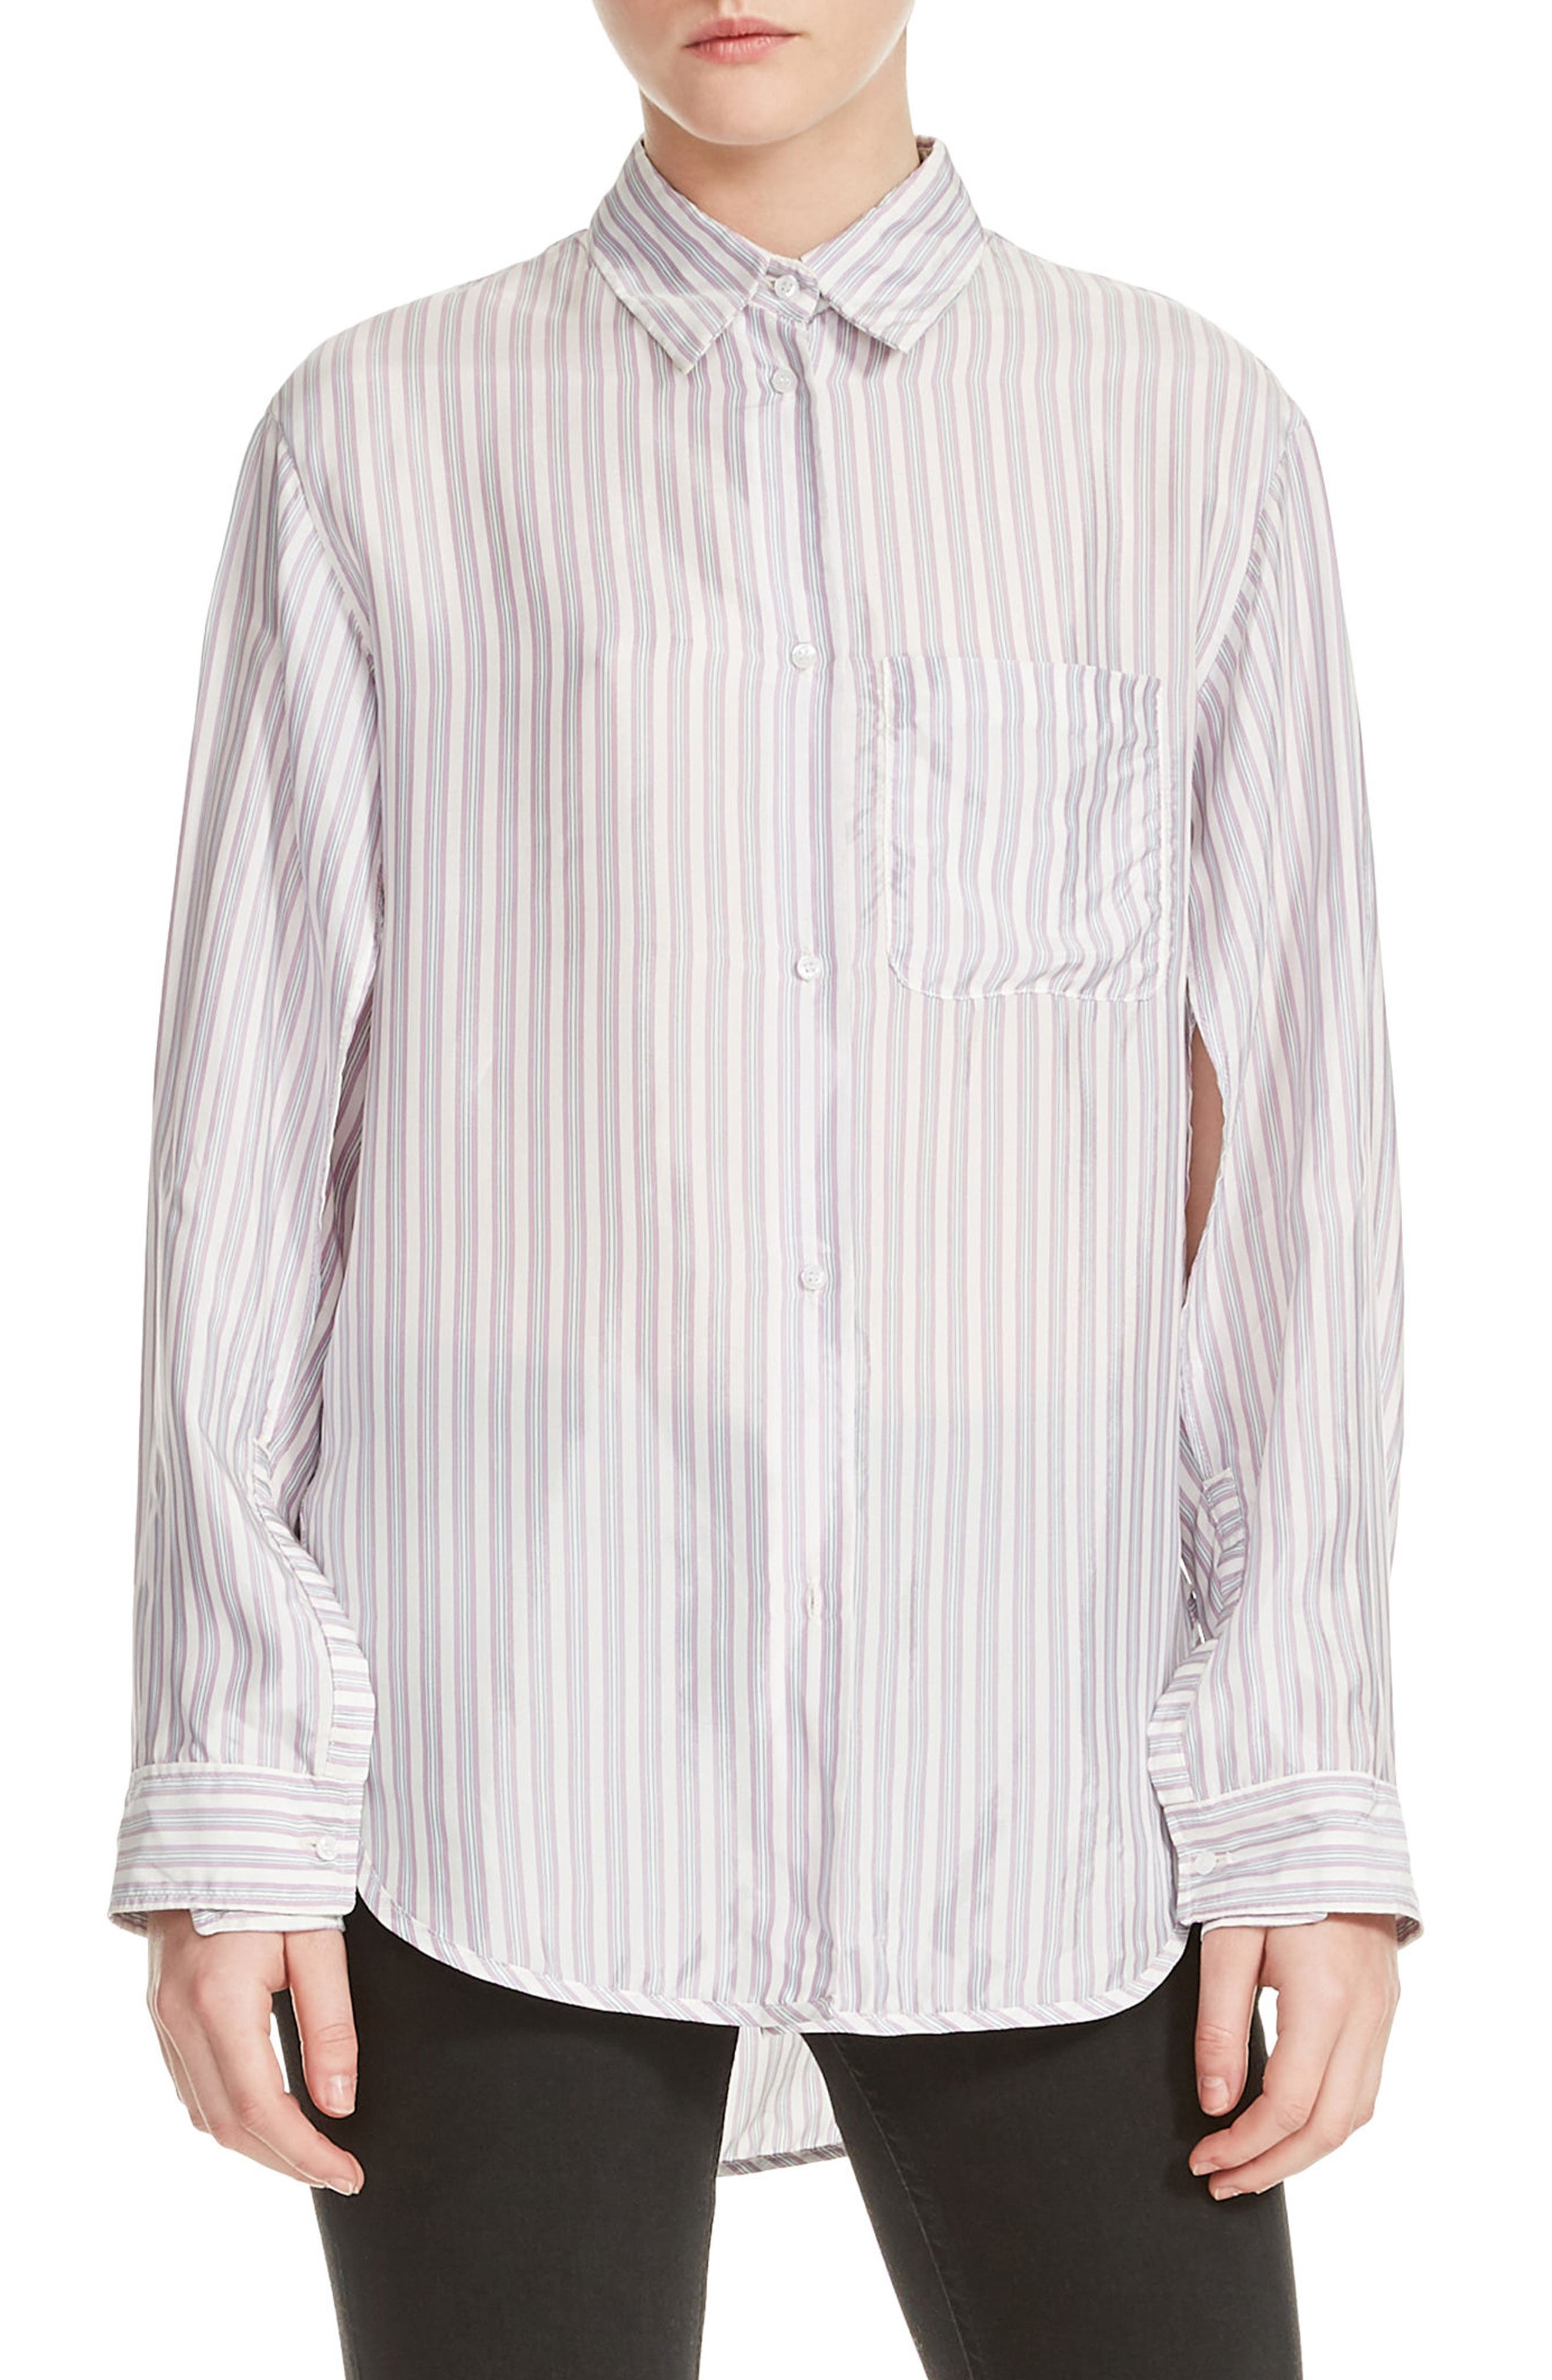 Celina High/Low Stripe Blouse,                             Main thumbnail 1, color,                             Stripe